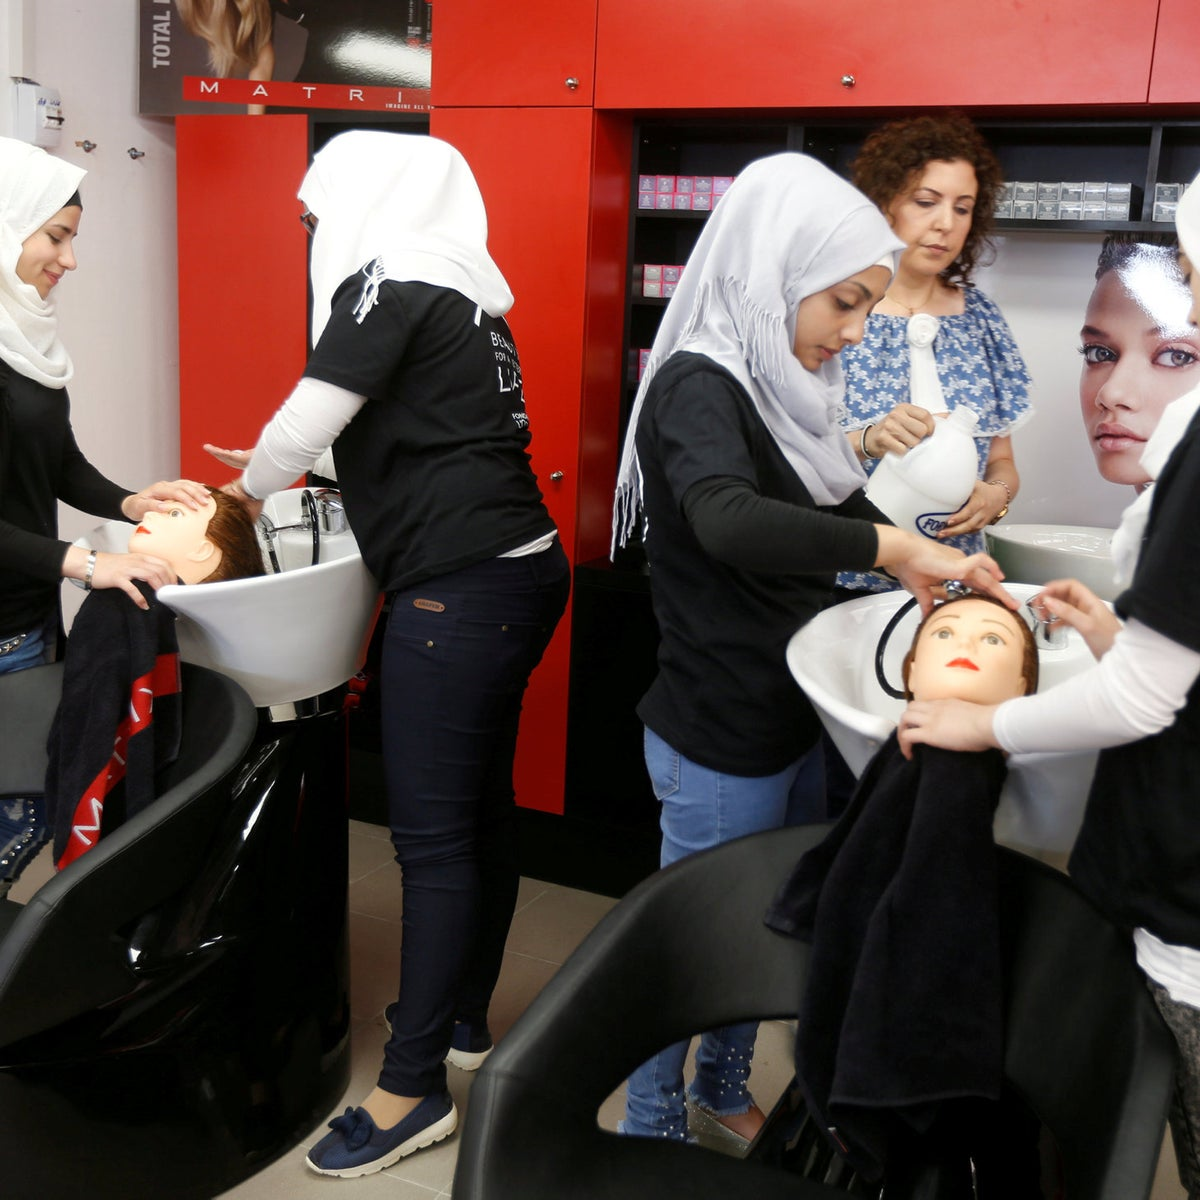 Women practice on hair mannequins at a training salon in Bar Elias town, in the Bekaa valley, Lebanon July 25, 2018. Picture taken July 25, 2018.